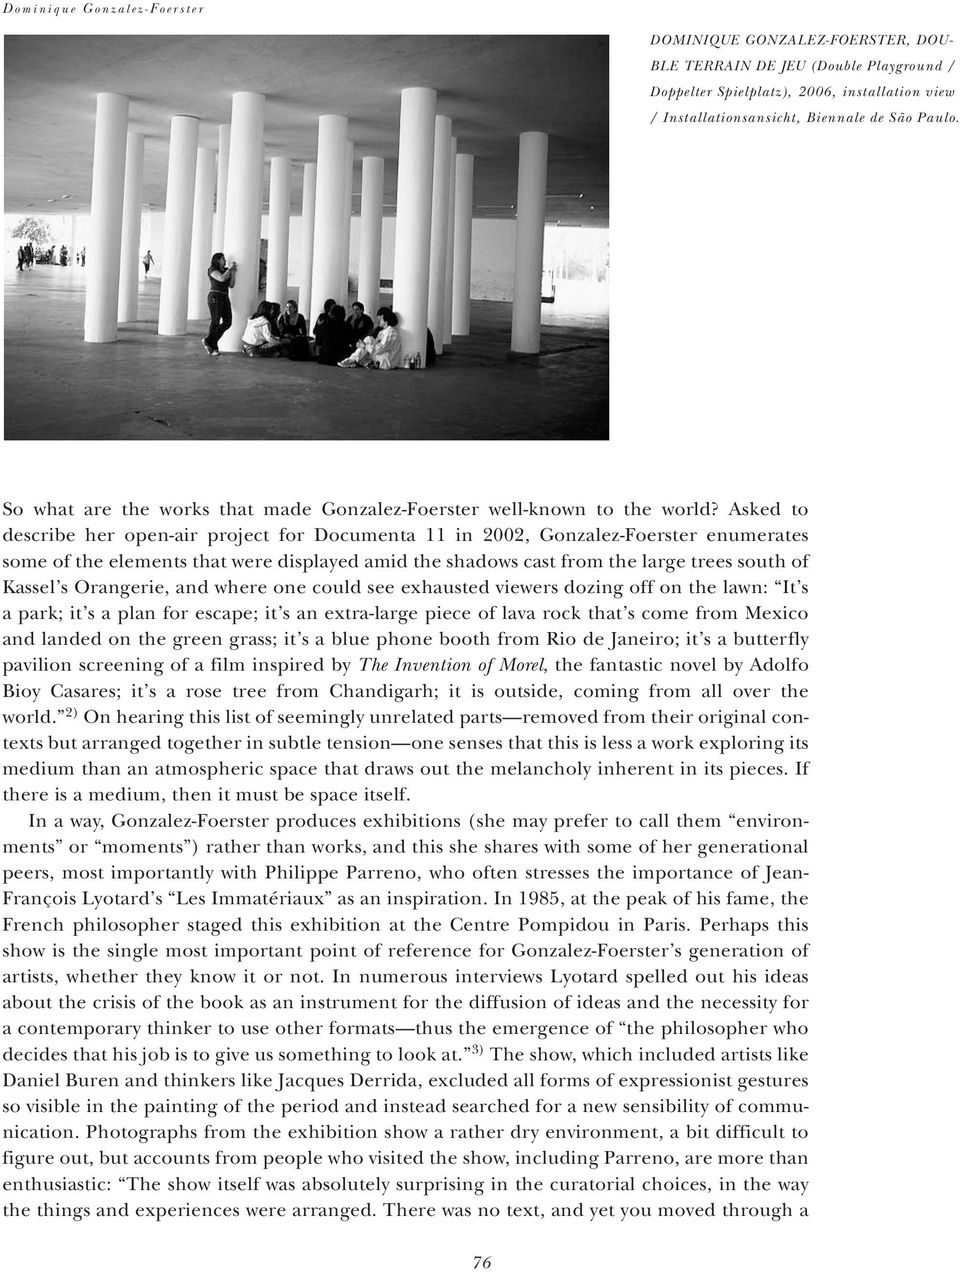 Asked to describe her open-air project for Documenta 11 in 2002, Gonzalez-Foerster enumerates some of the elements that were displayed amid the shadows cast from the large trees south of Kassel s